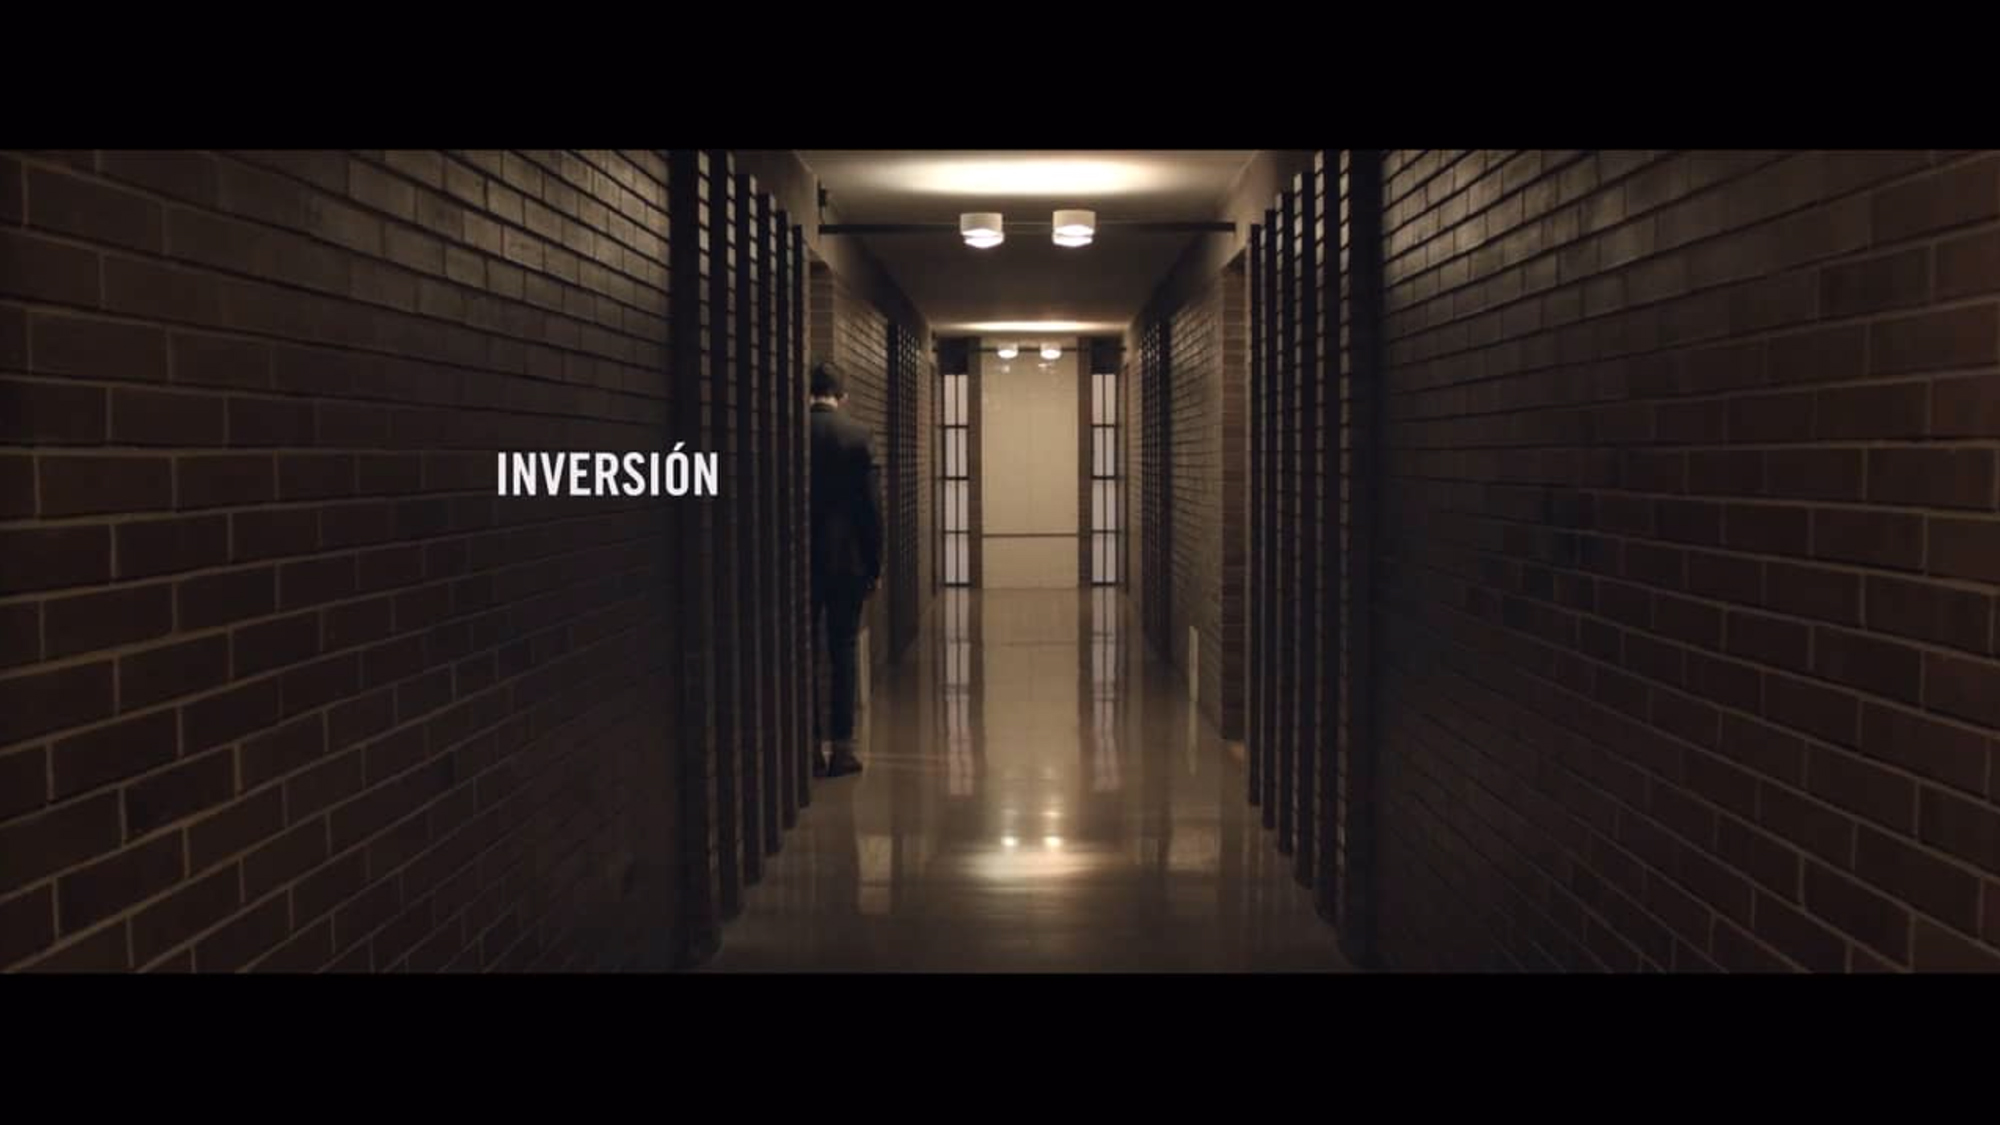 WHAT A MOVIE: 'Investment' by Marcel Juan